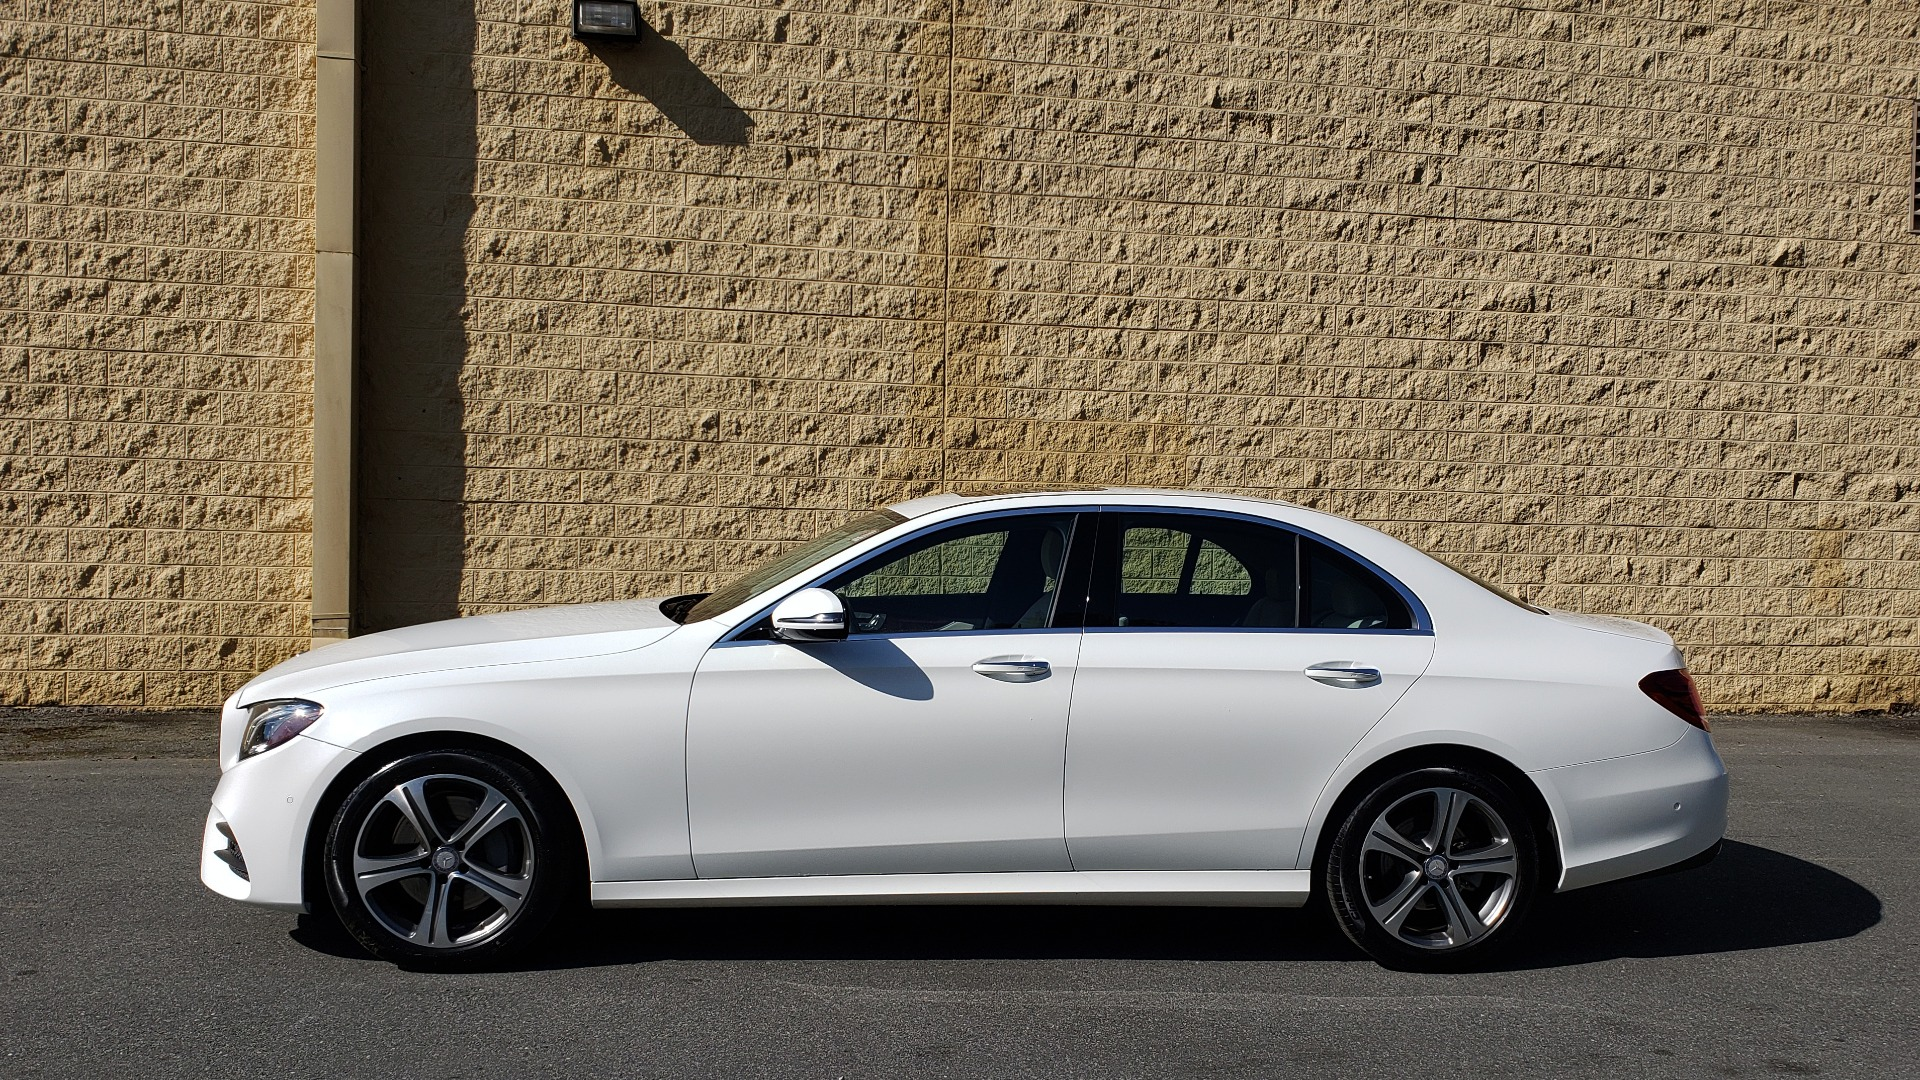 Used 2017 Mercedes-Benz E-Class E 300 PREMIUM / RWD / NAV / SNF / PARKING PILOT / REARVIEW / BURMESTER for sale Sold at Formula Imports in Charlotte NC 28227 2